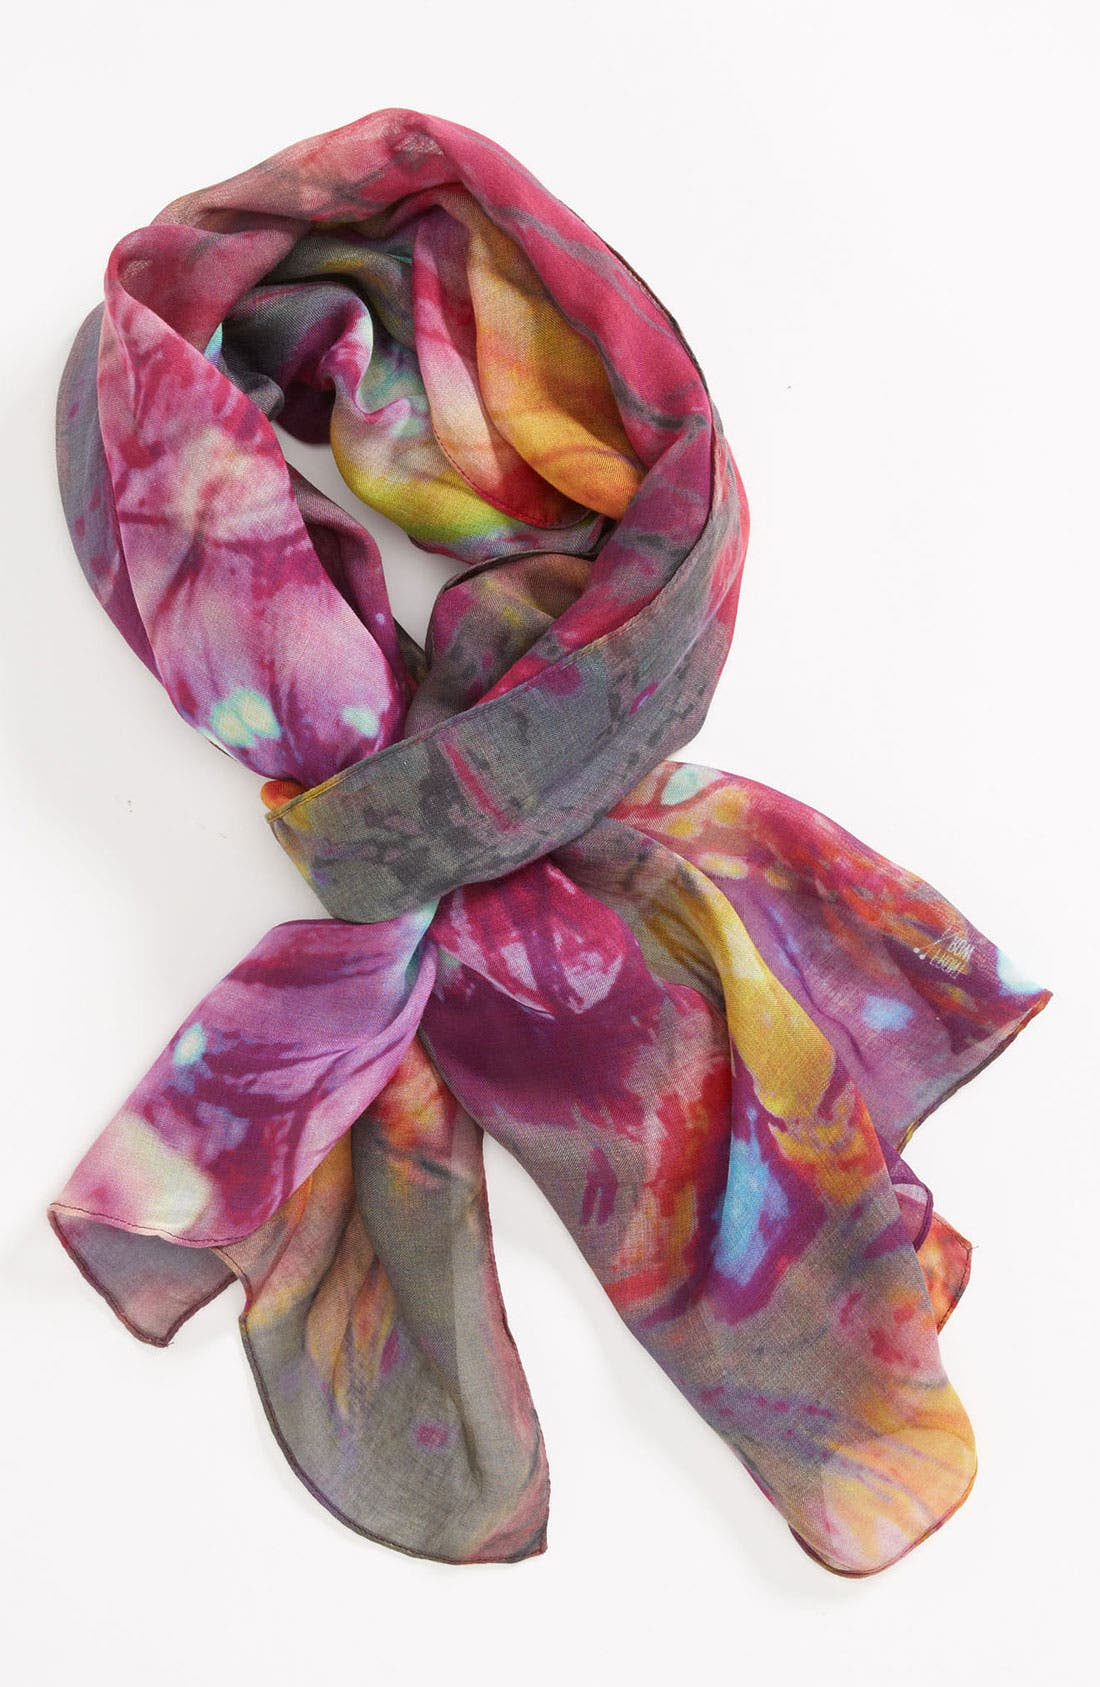 Alternate Image 1 Selected - Front Row Society 'Floral Electricity' Scarf